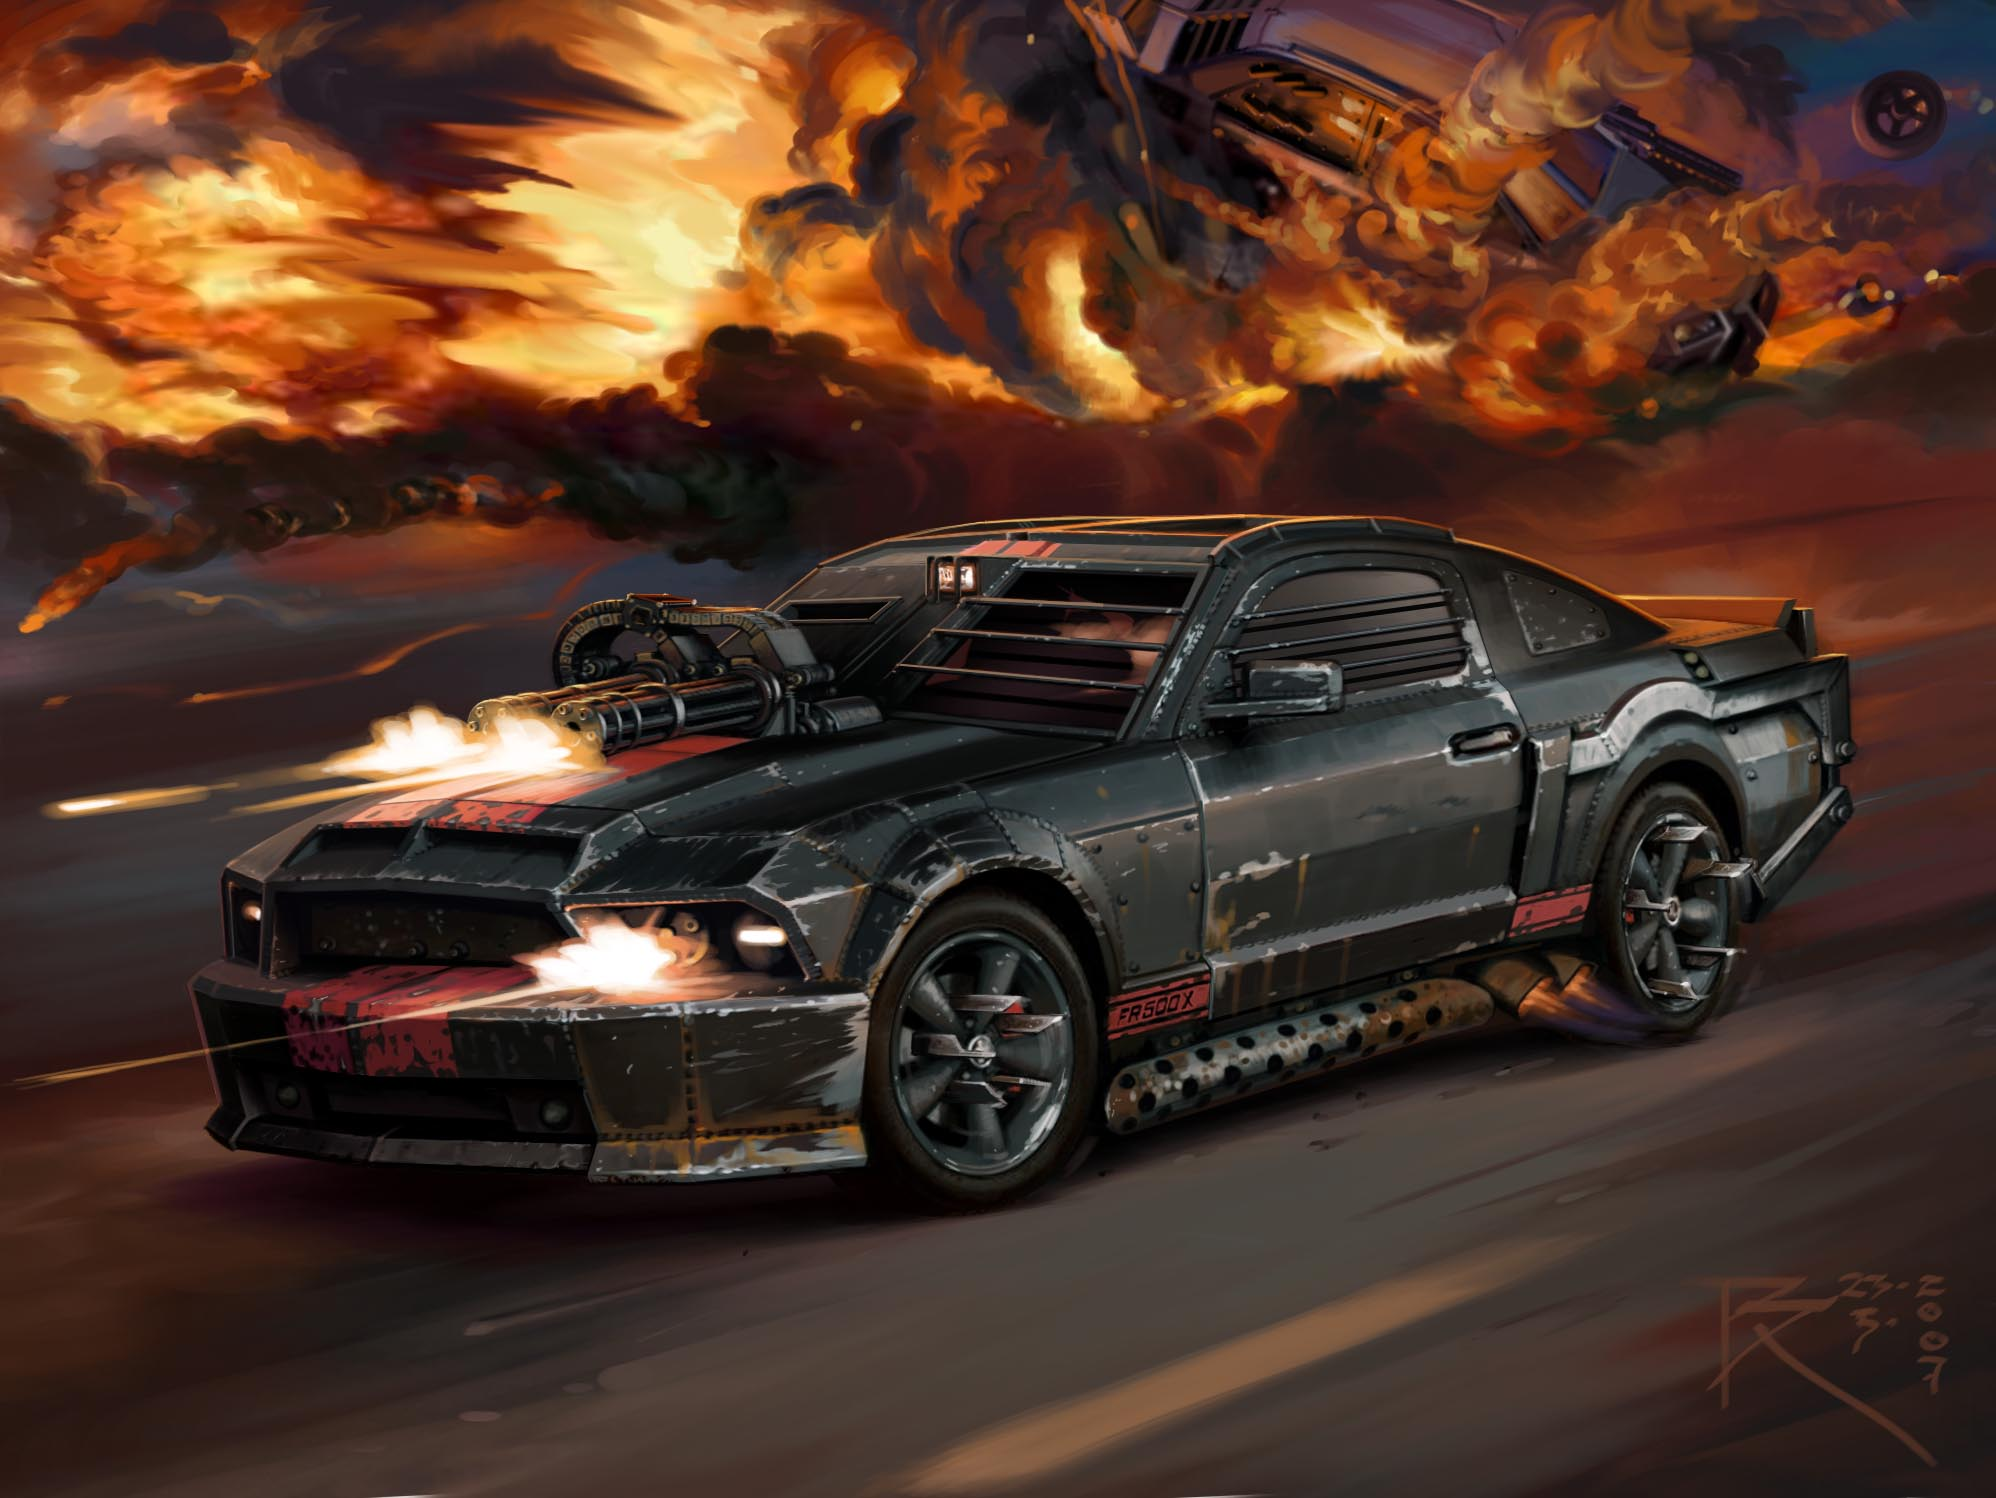 Image ford mustang shelby gt500 front 6psd jpg death race wiki fandom powered by wikia